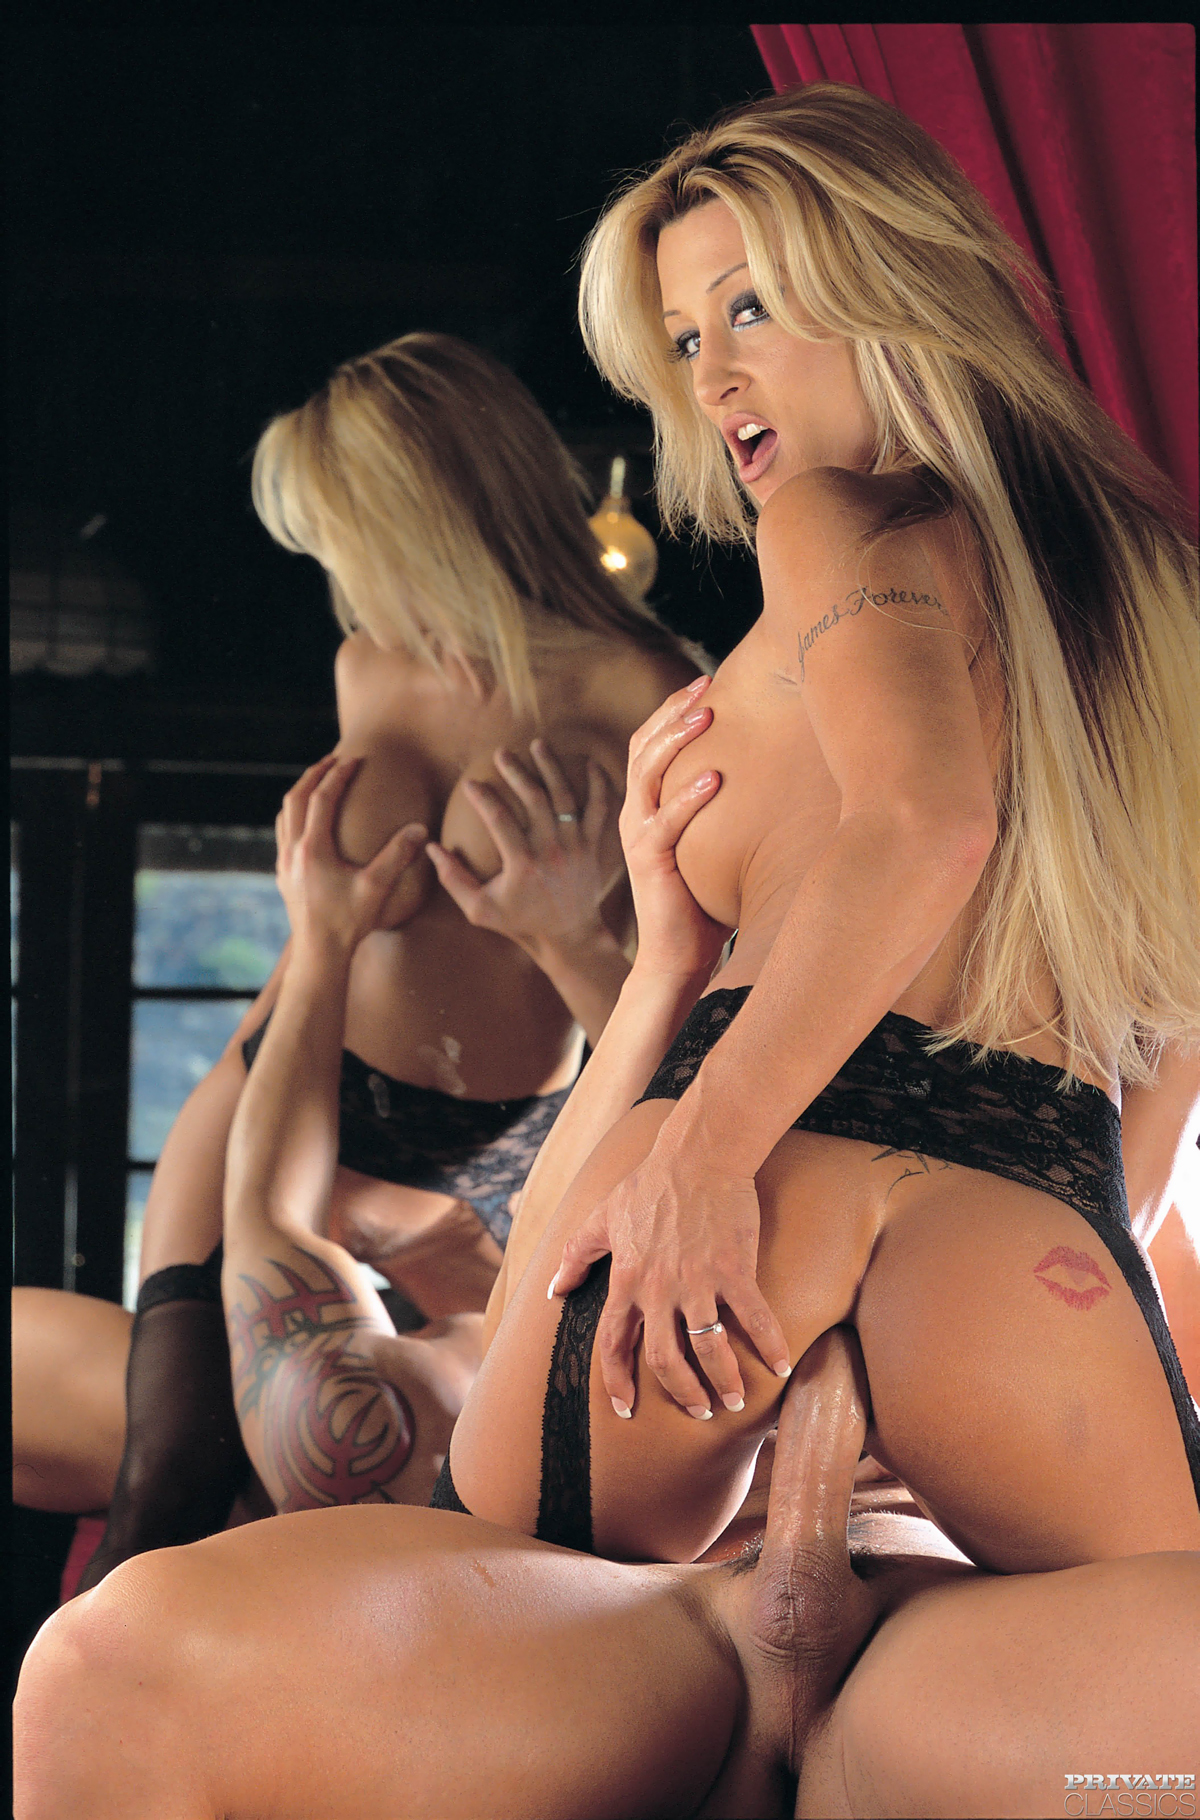 Jill kelly anal xxx photos hq